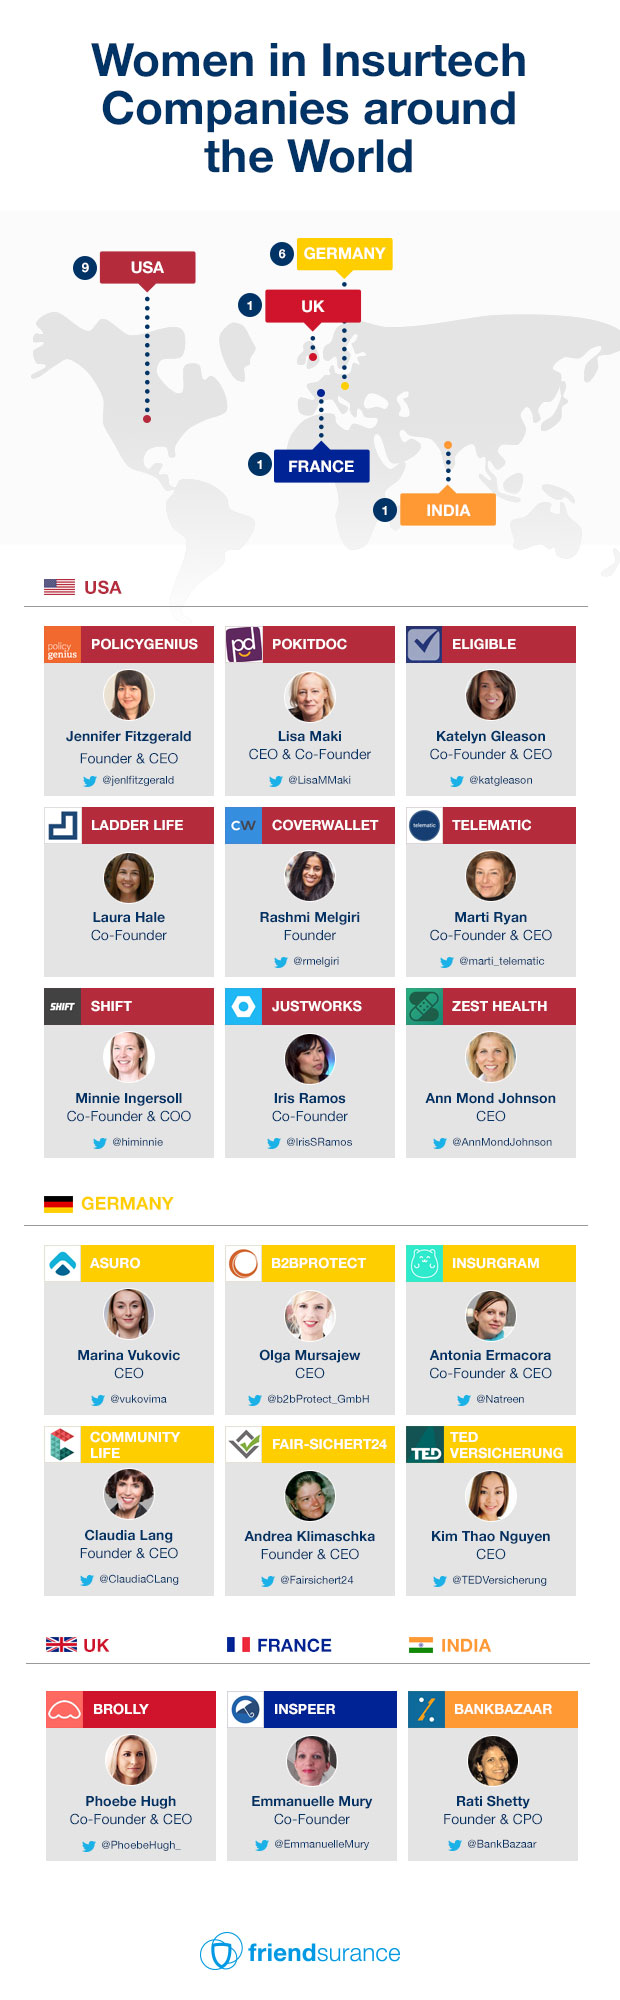 Infographic-Women-in-Insurtech-Companies-around-the-World